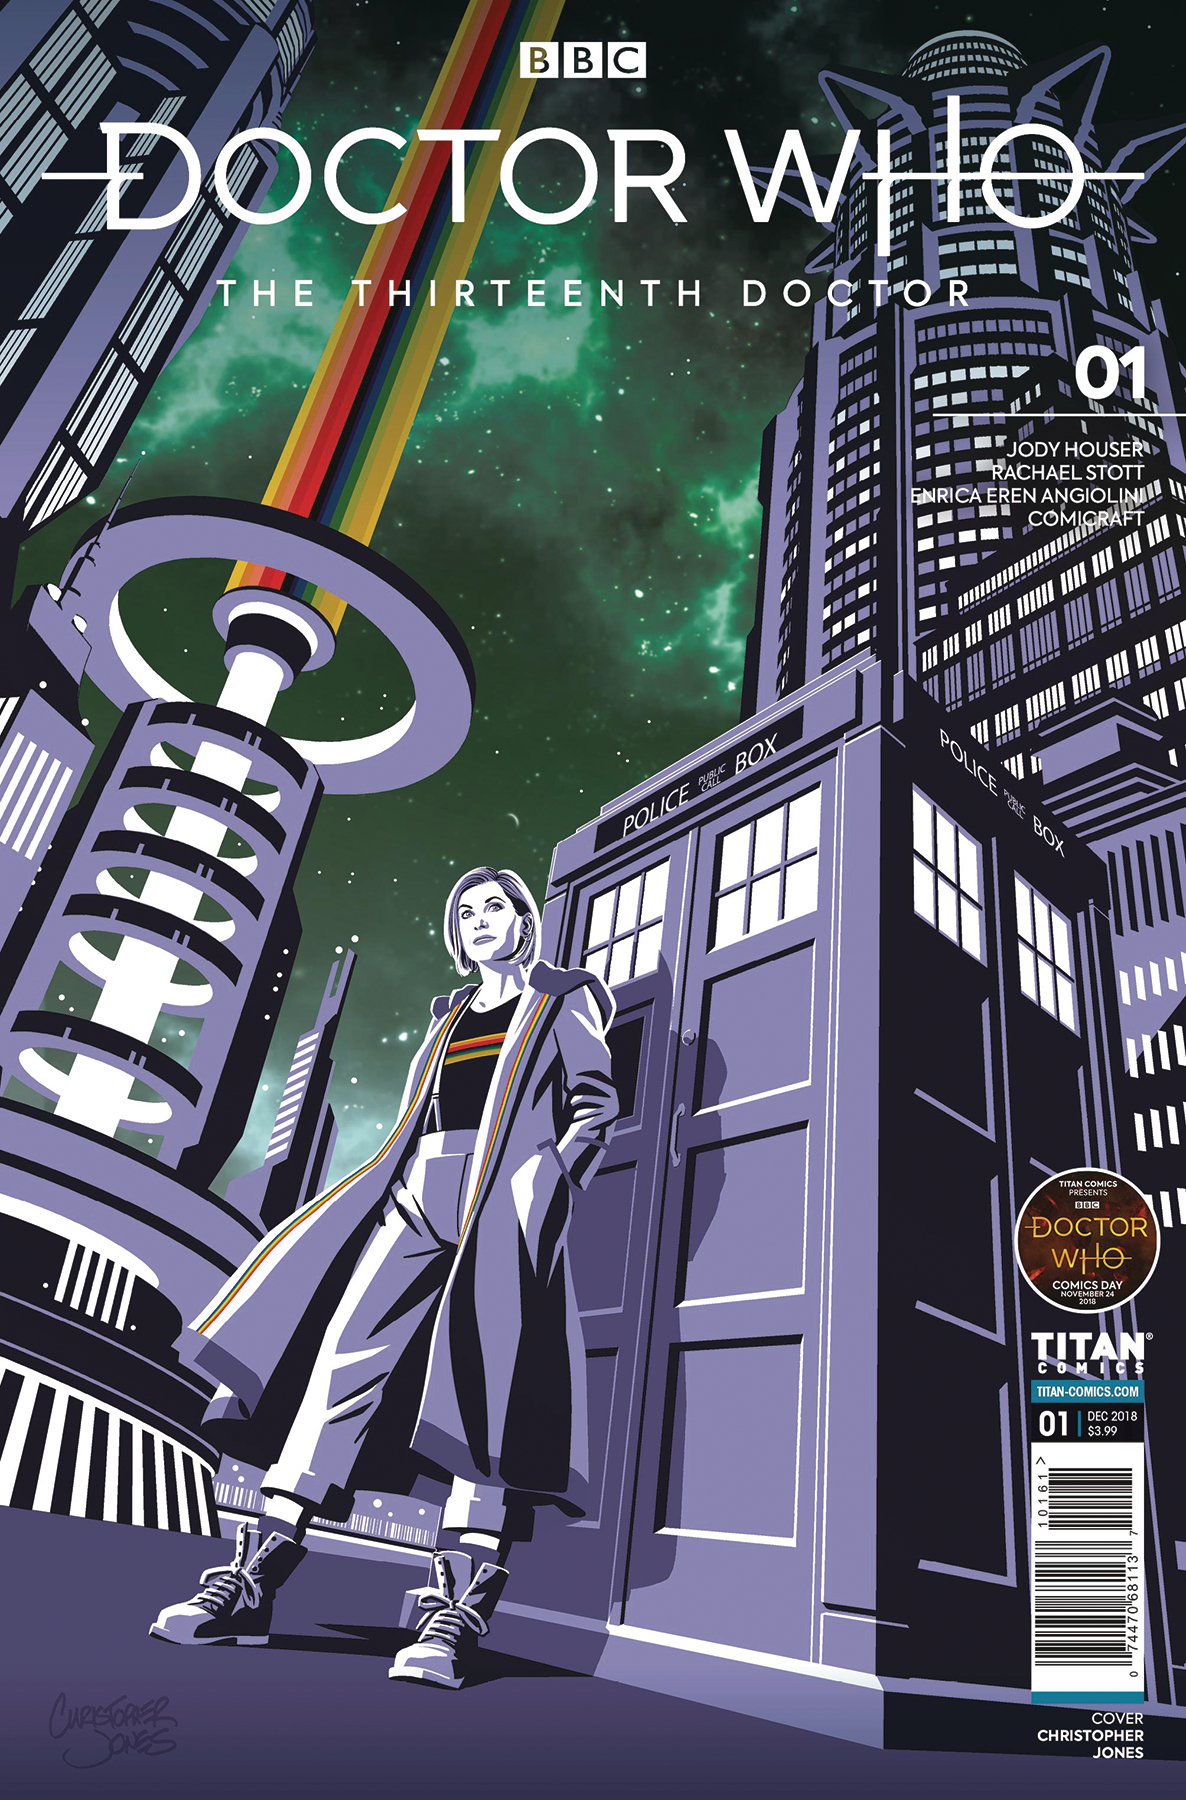 DOCTOR WHO 13TH #1 DOCTOR WHO COMICS DAY EXC CVR